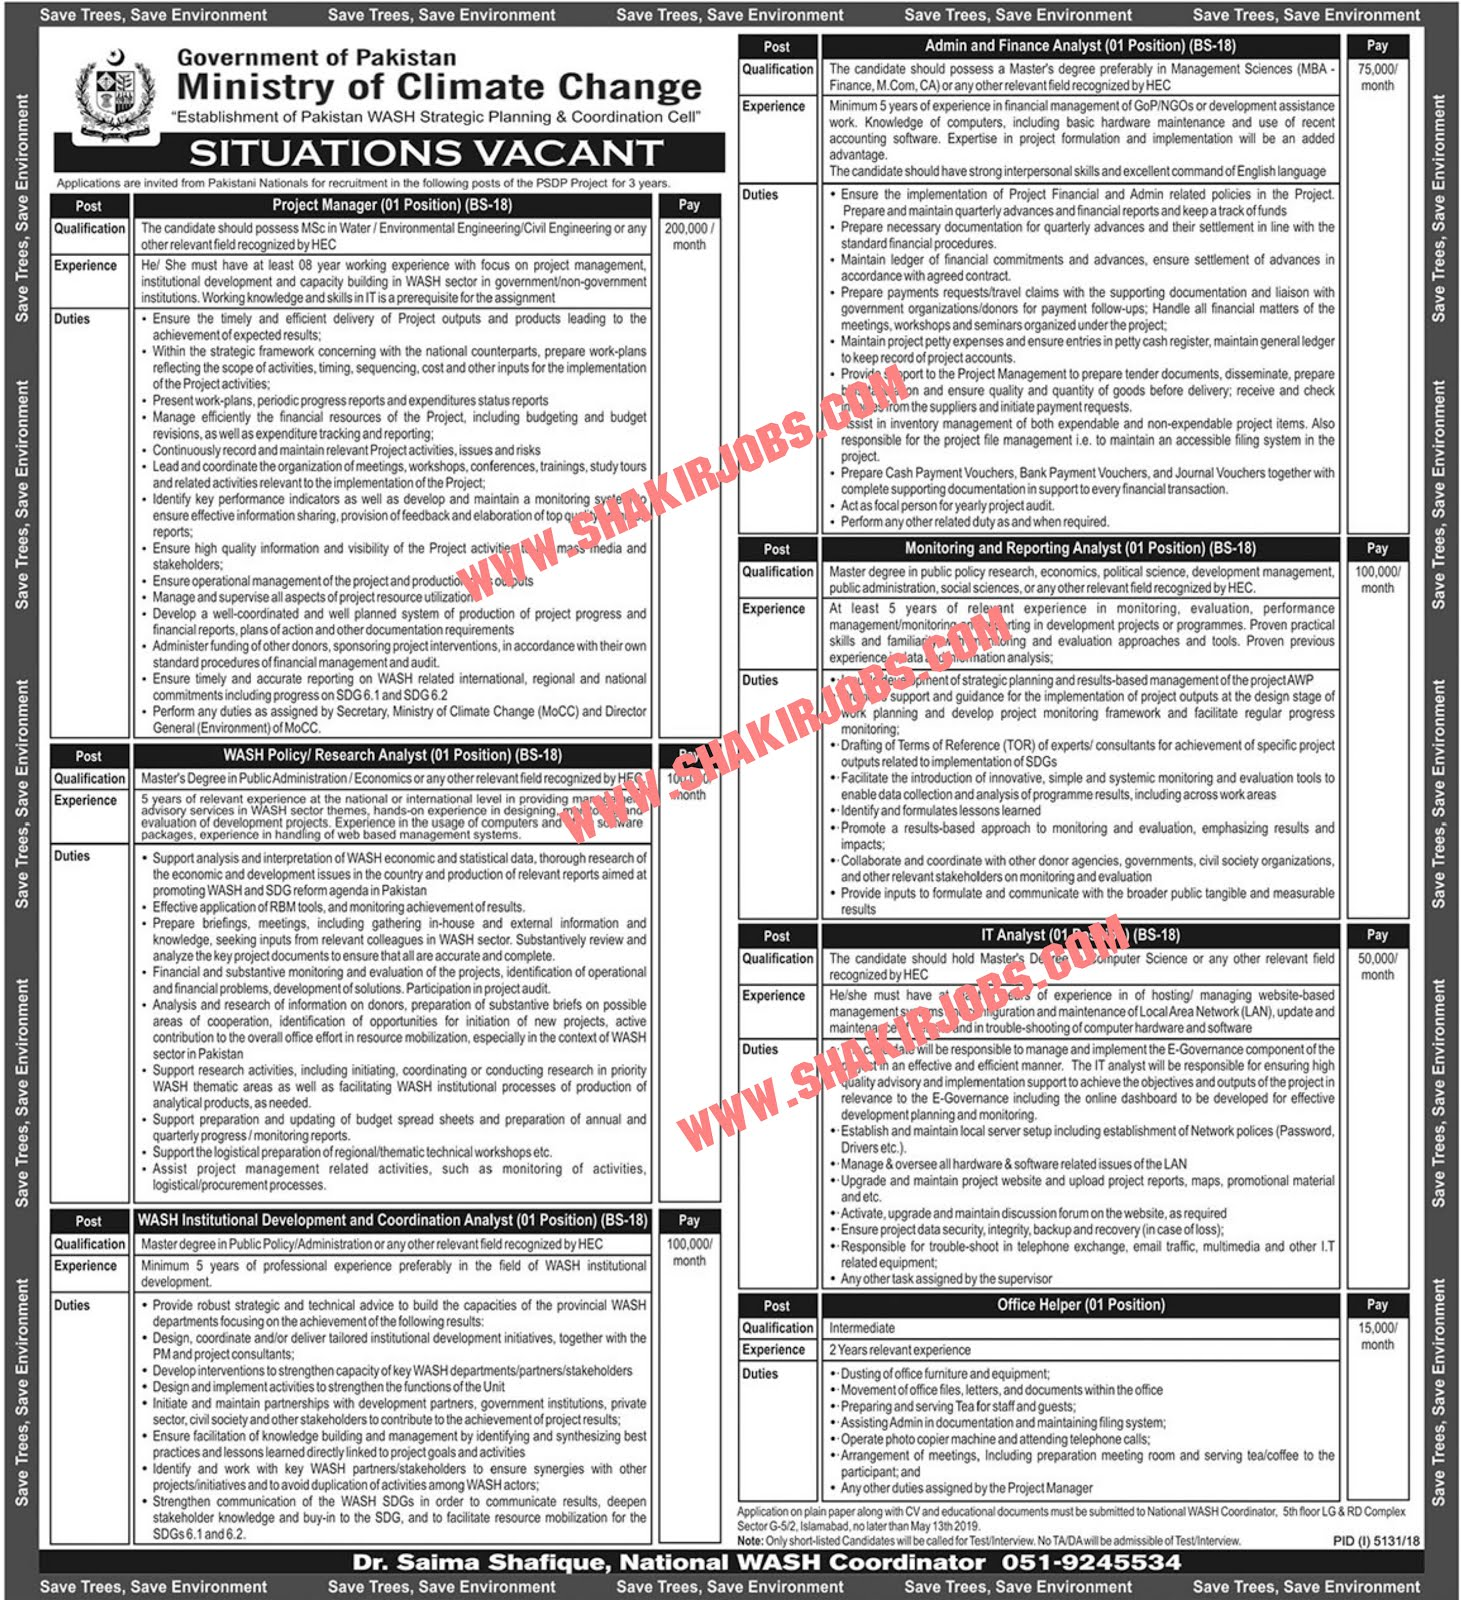 climate change,ministry of environment forest and climate change,ministry of environment forest and climate change recruitment,jobs in ministry of climate change,ministry of climate change pakistan jobs 2018,ministry of climate change and environment jobs 2019,ministry of climate change,ministry of climate change and environment,ministry of environment,ministry of environment steno recruitment 2018